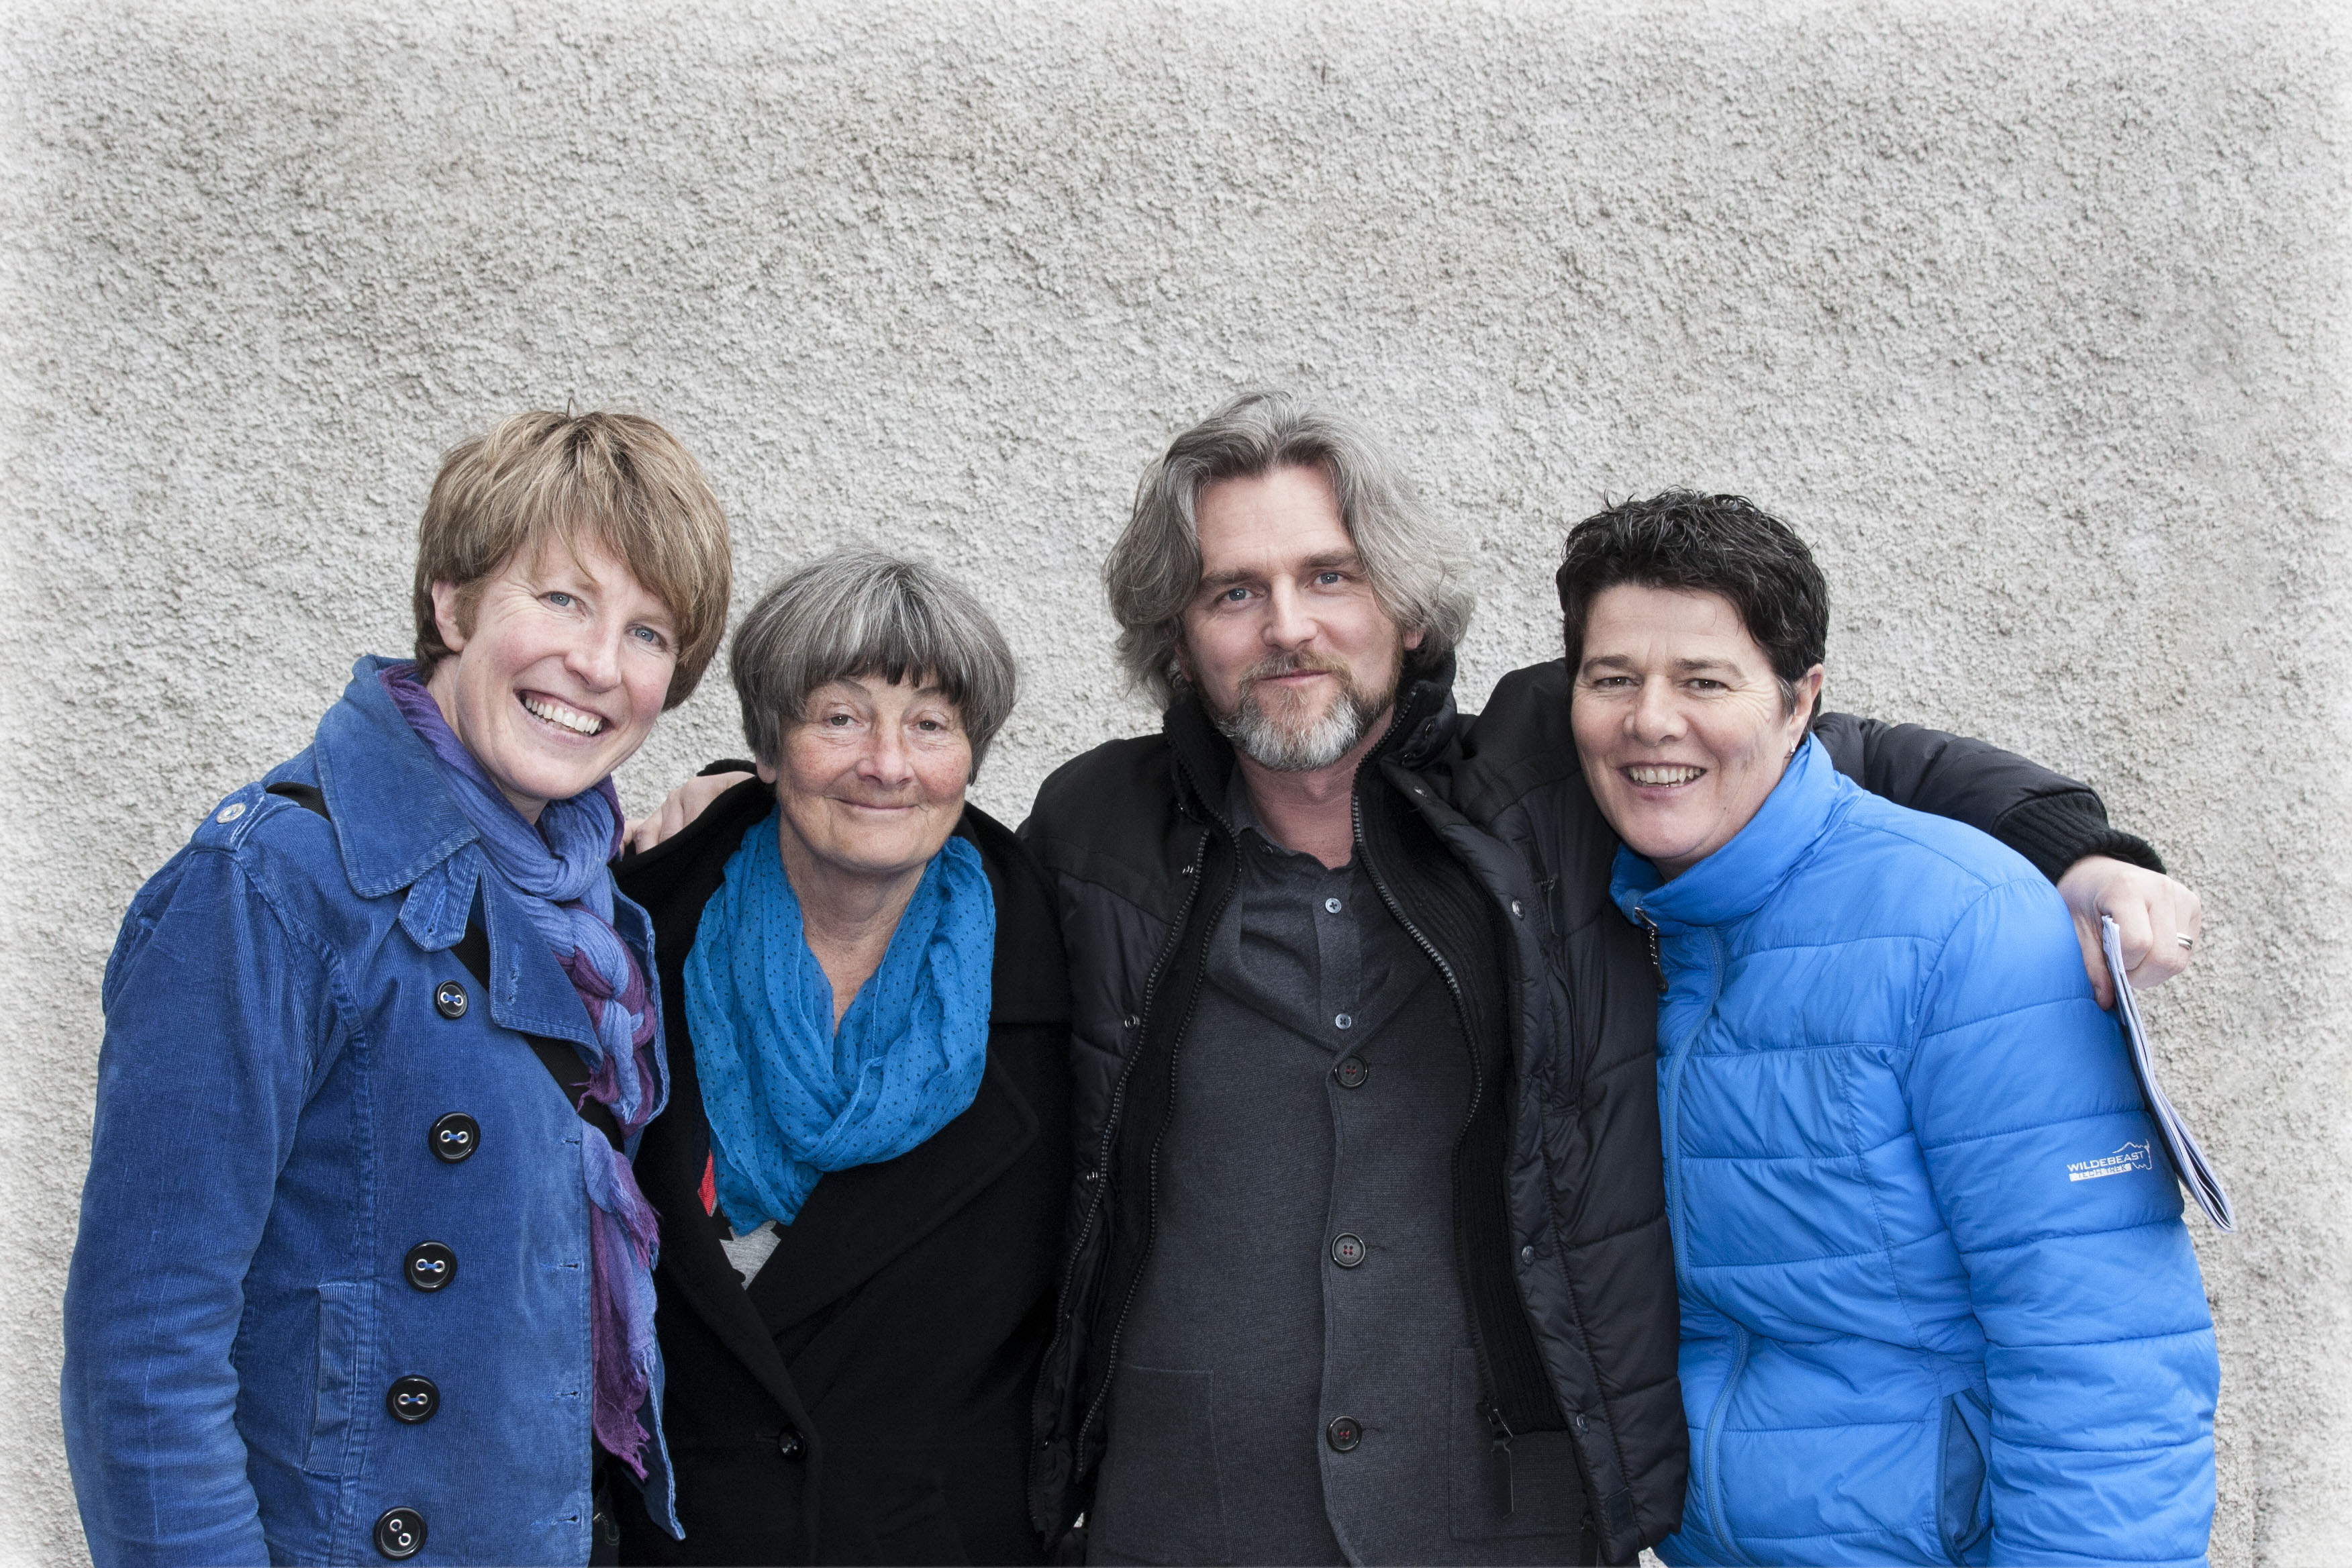 Lisa Fingleton (Left: Director) and Rena Blake (Right: Assistant Producer) of the winning film 'Waiting for you' with Maurice Galway (CEO, Dingle Film Festival) and writer Frances Kay. Photo: Dave Morrison